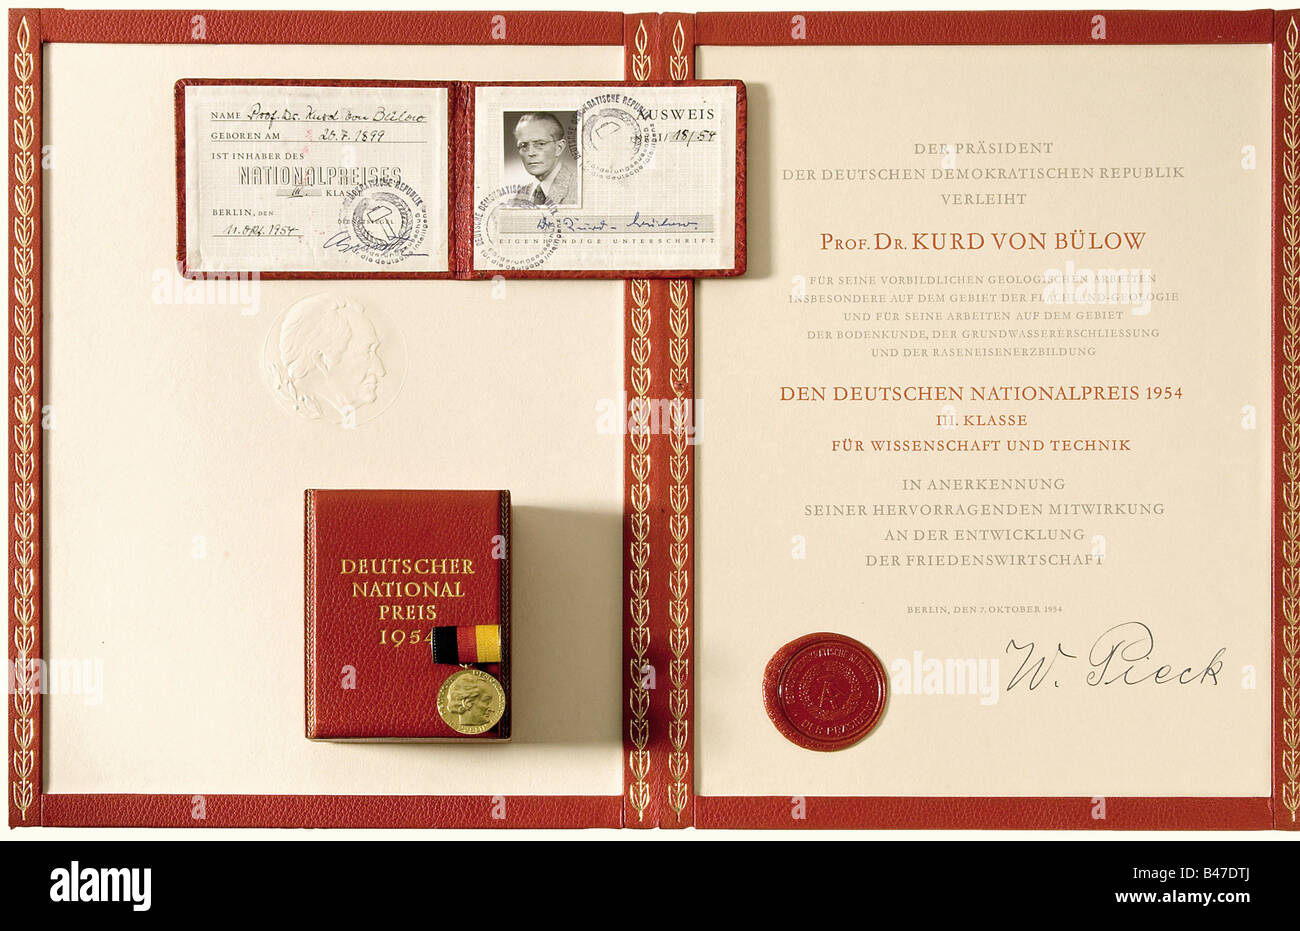 A German National Prize for Science and Technology III Class., Awarded to Professor Kurd von Bülow in 1954. Gold. Stock Photo